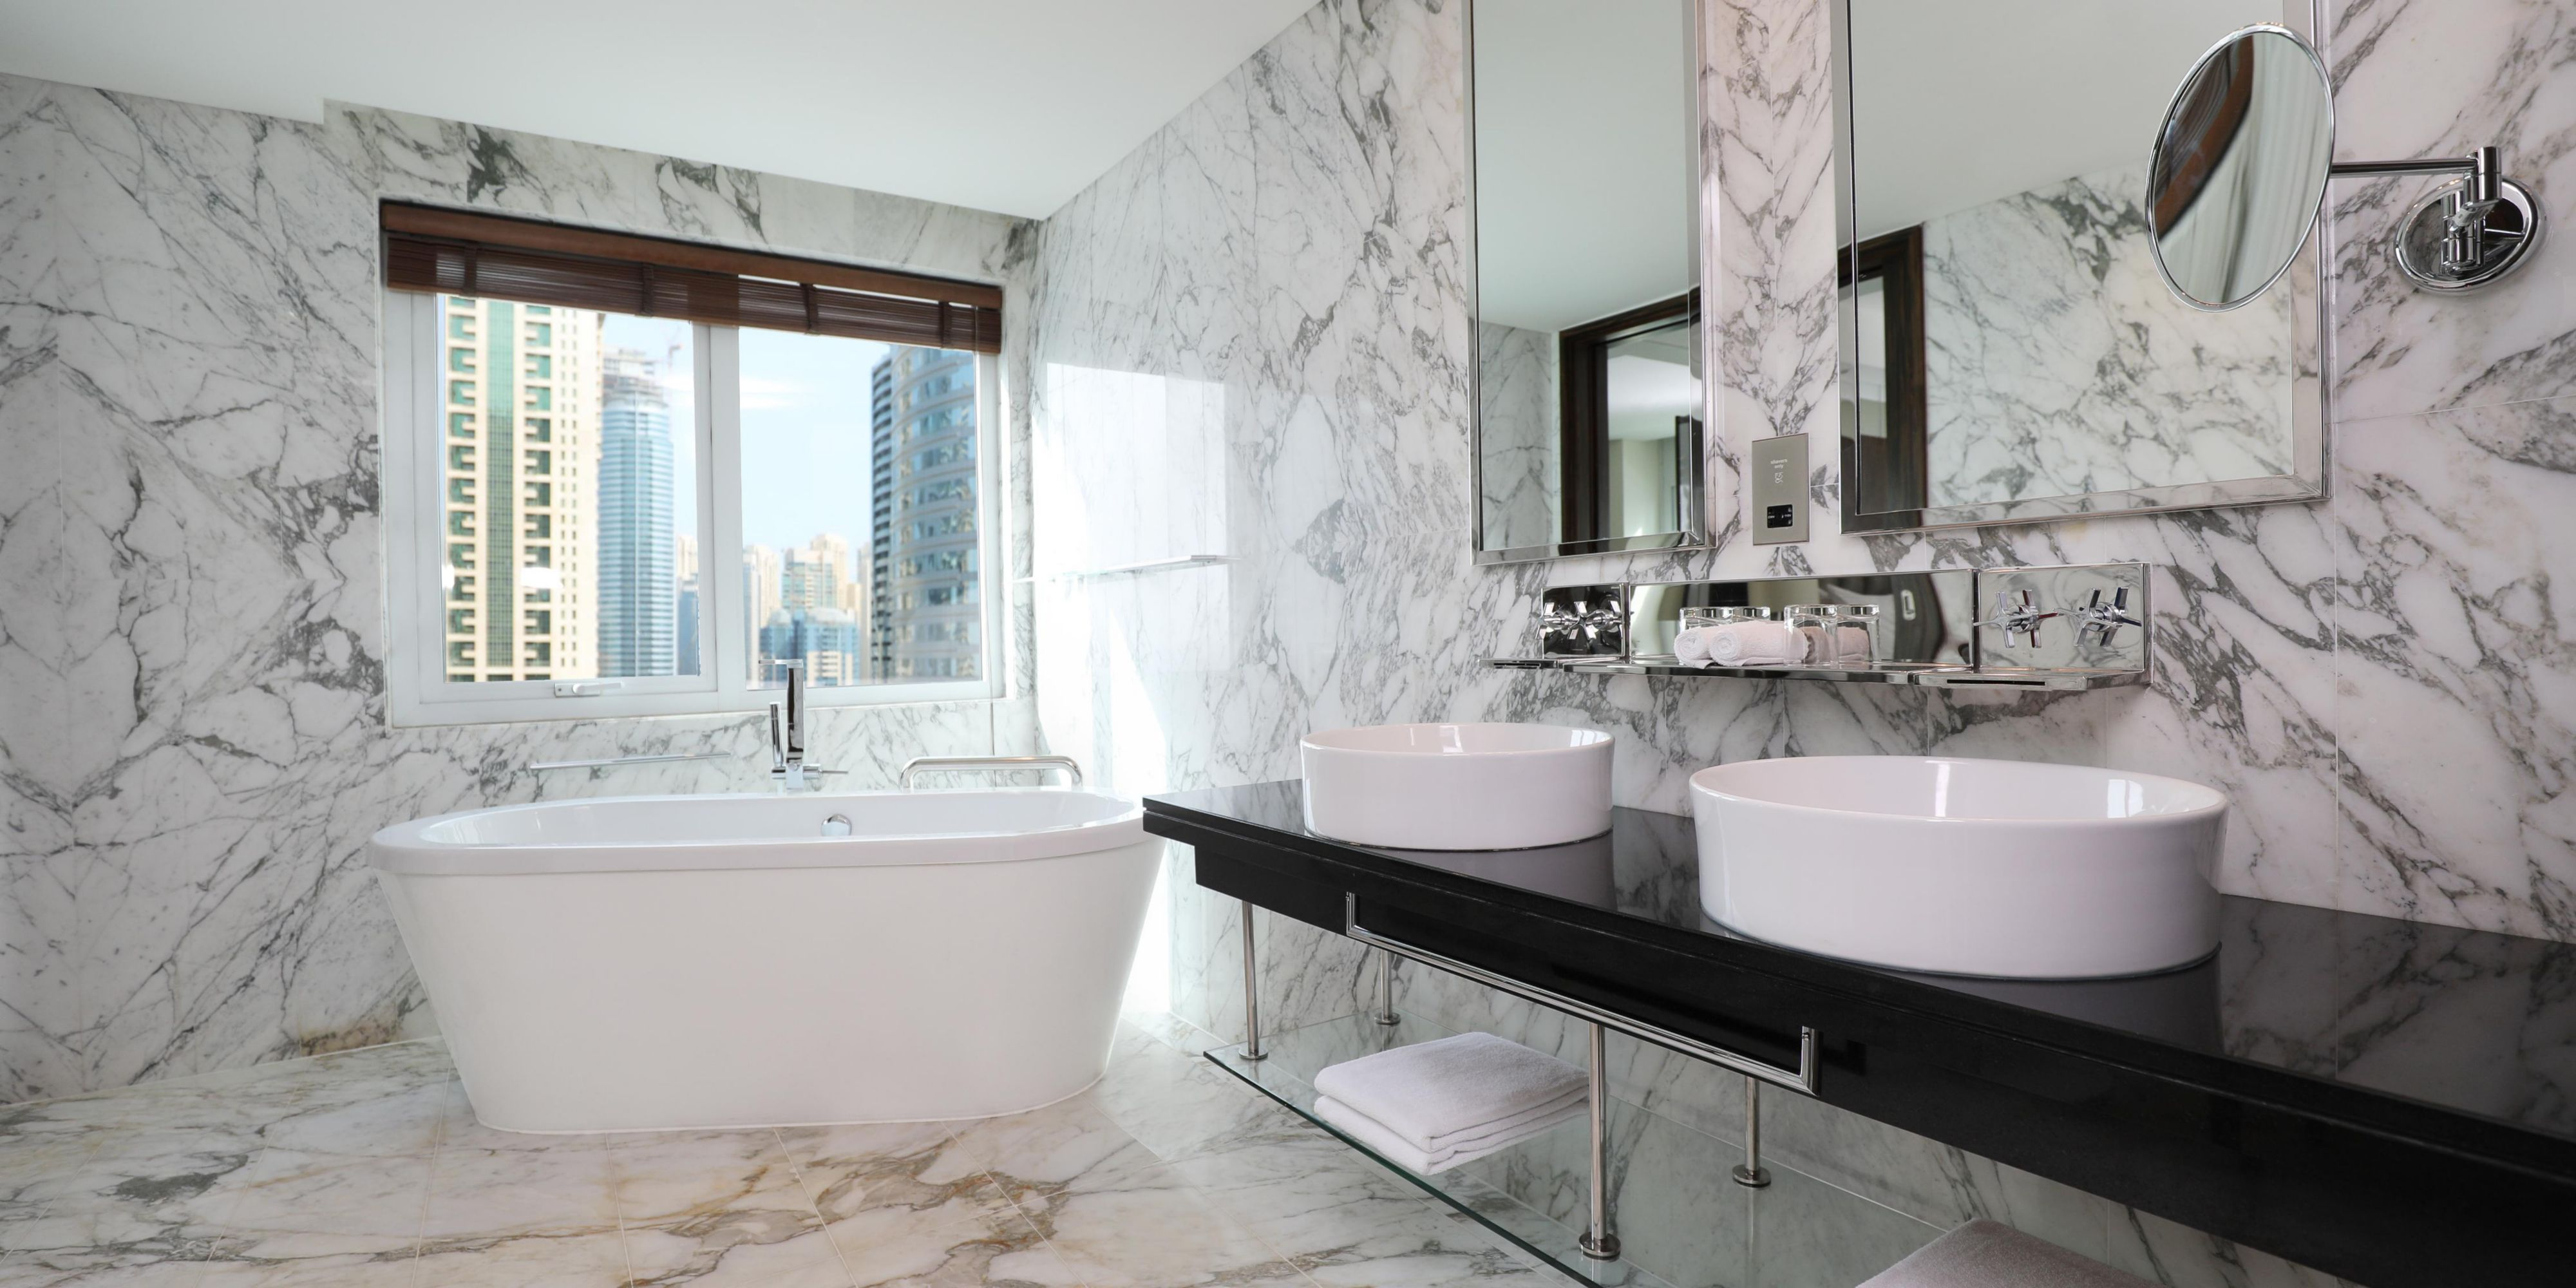 Our stand-alone bathtub and double vanity mirrors and sinks